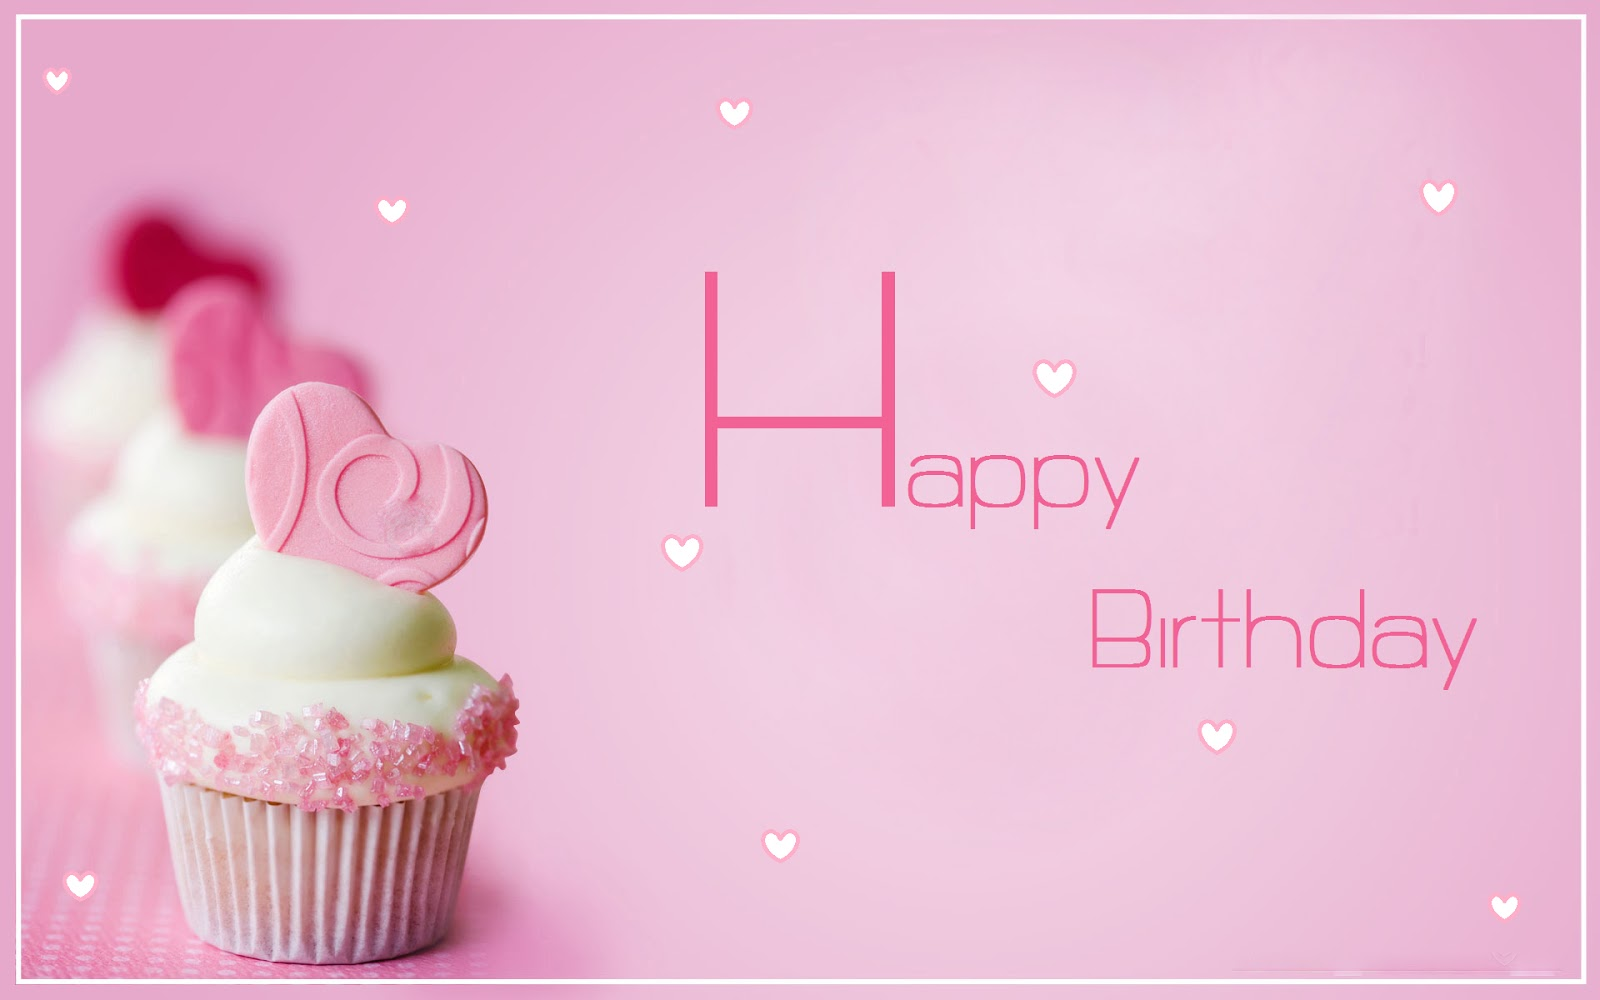 birthday girl wallpaper ; Happy-birthday-pink-background-with-little-hearts-for-girls-image